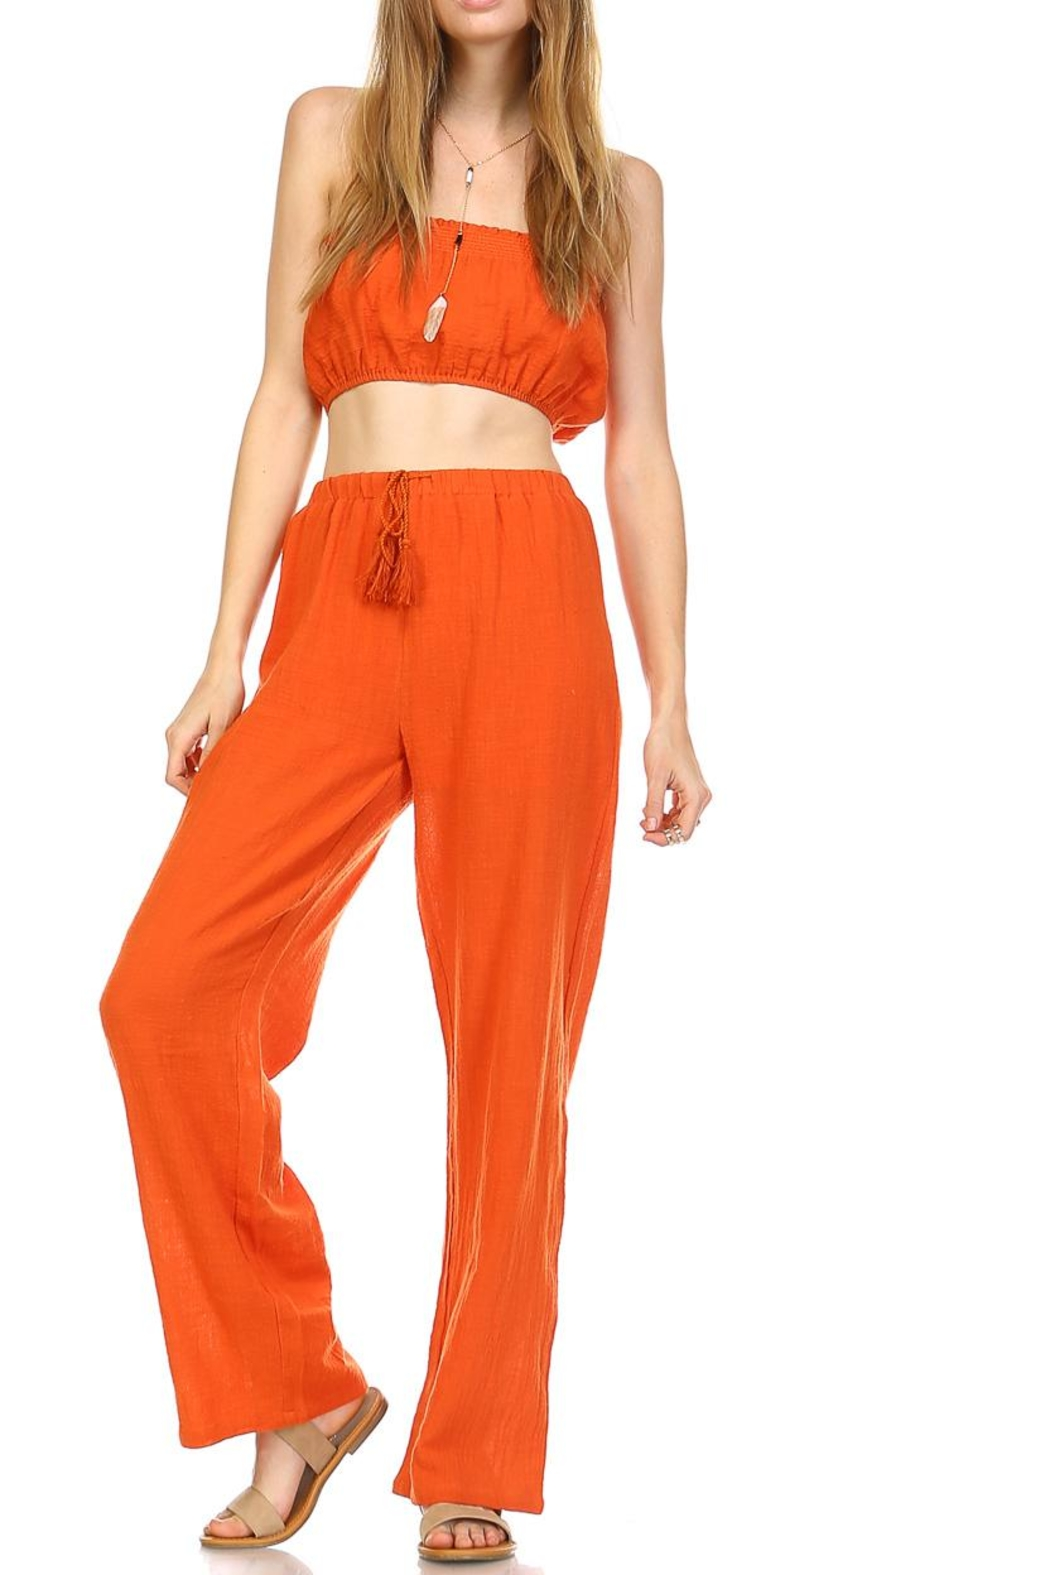 hers and mine Crop Pant Set - Front Cropped Image